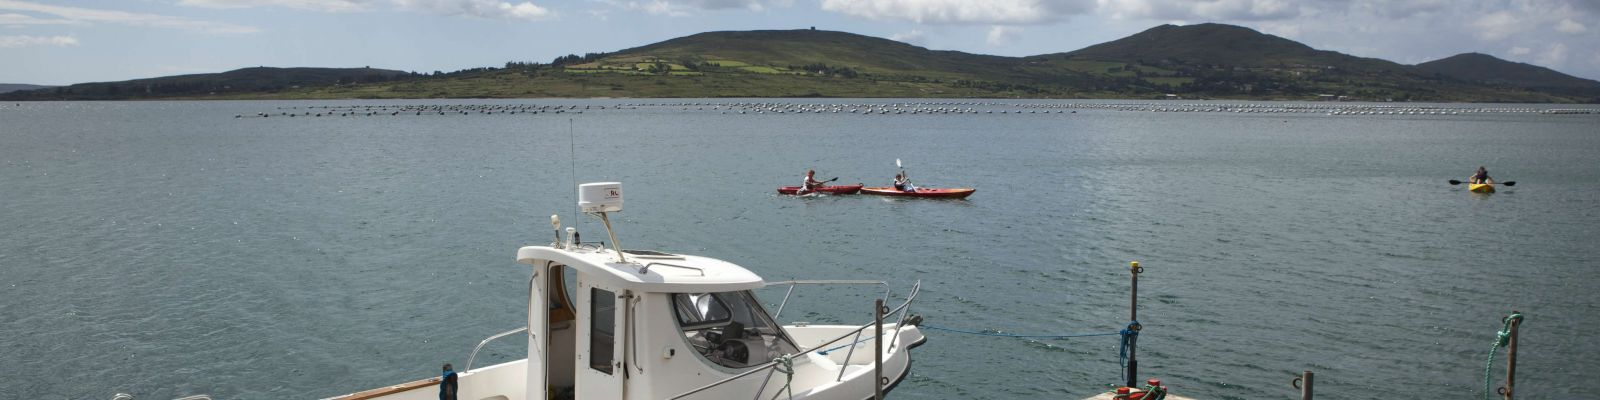 Berehaven Water Activities